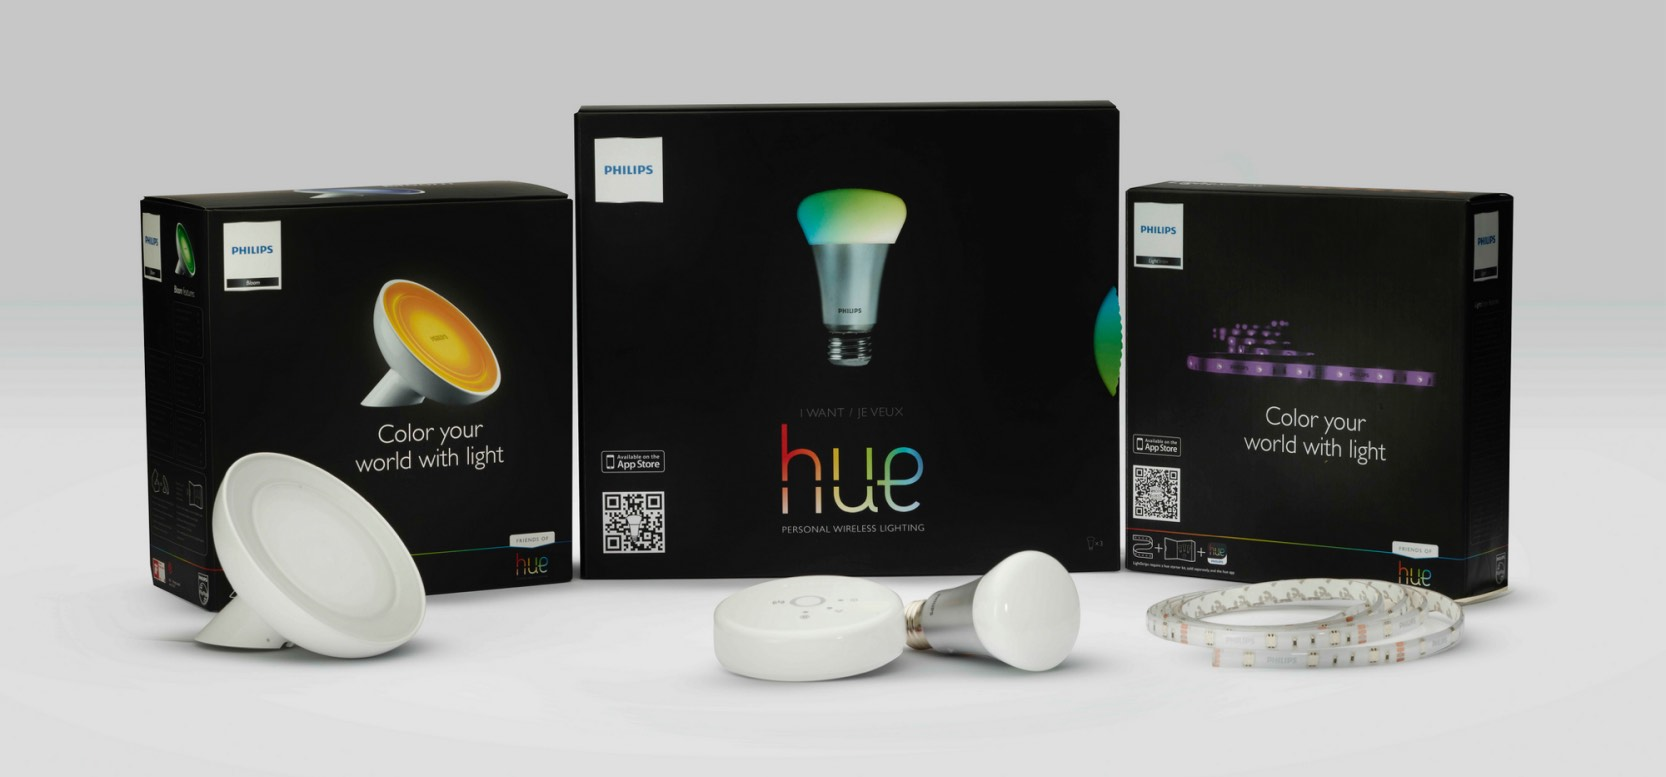 Philips Hue Alternativen Fr Das Smart Home Lichtsystem